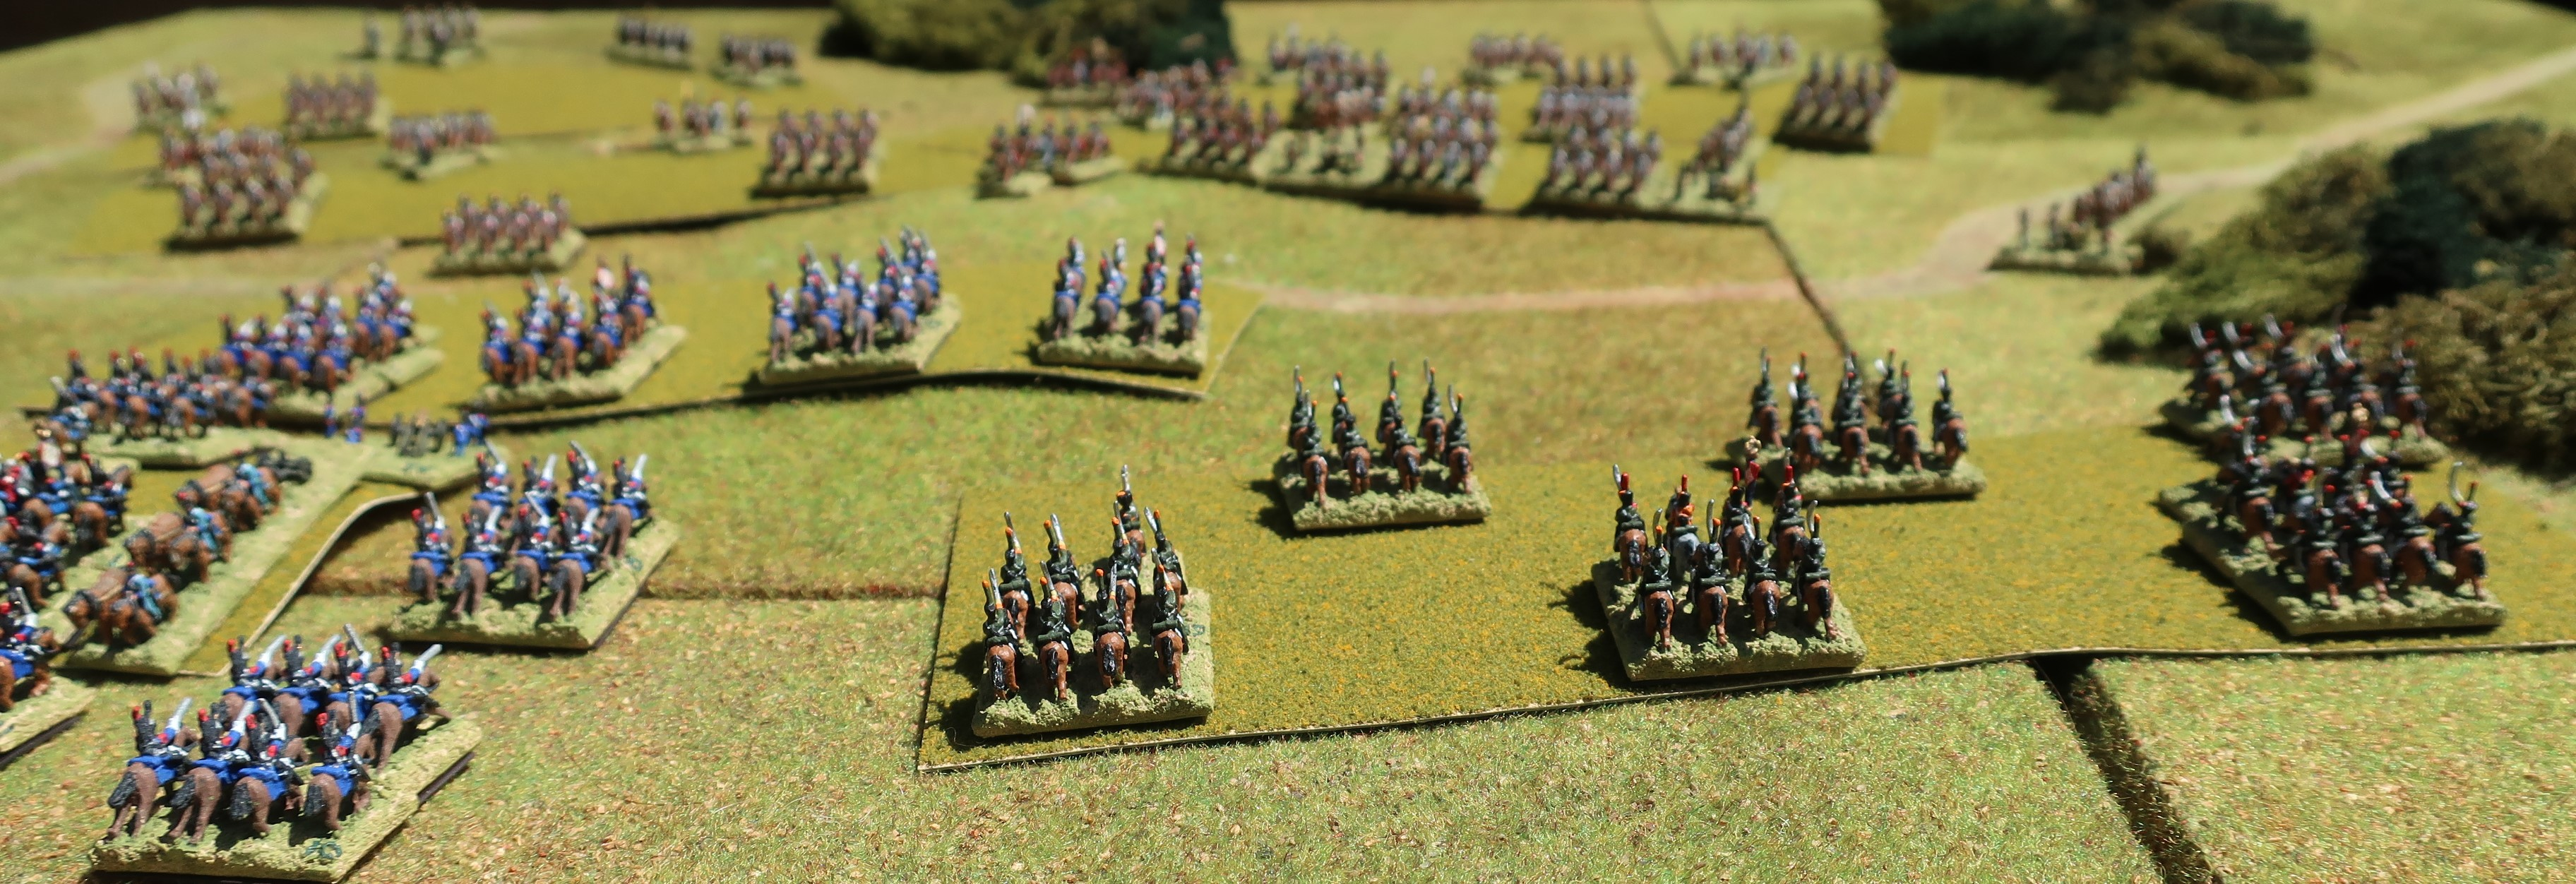 6mm wargaming bases of dating